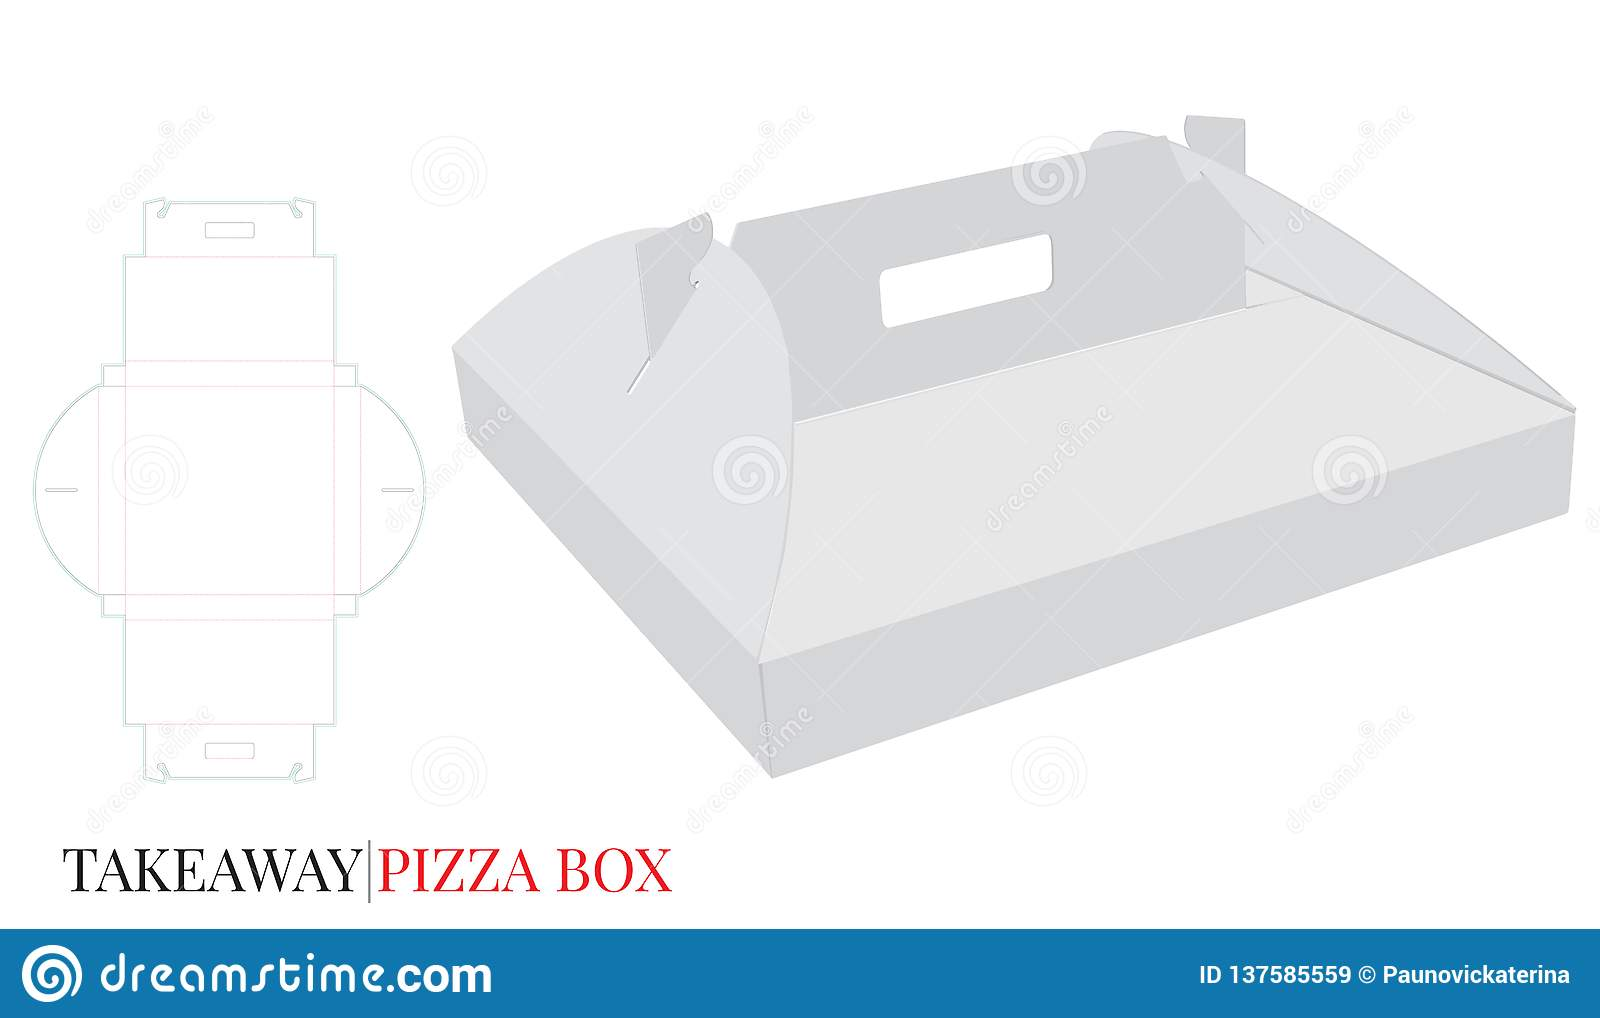 Pizza Box with Handle Template with die cut lines, Cardboard Self Lock Delivery Box. Vector with die cut / laser cut layers